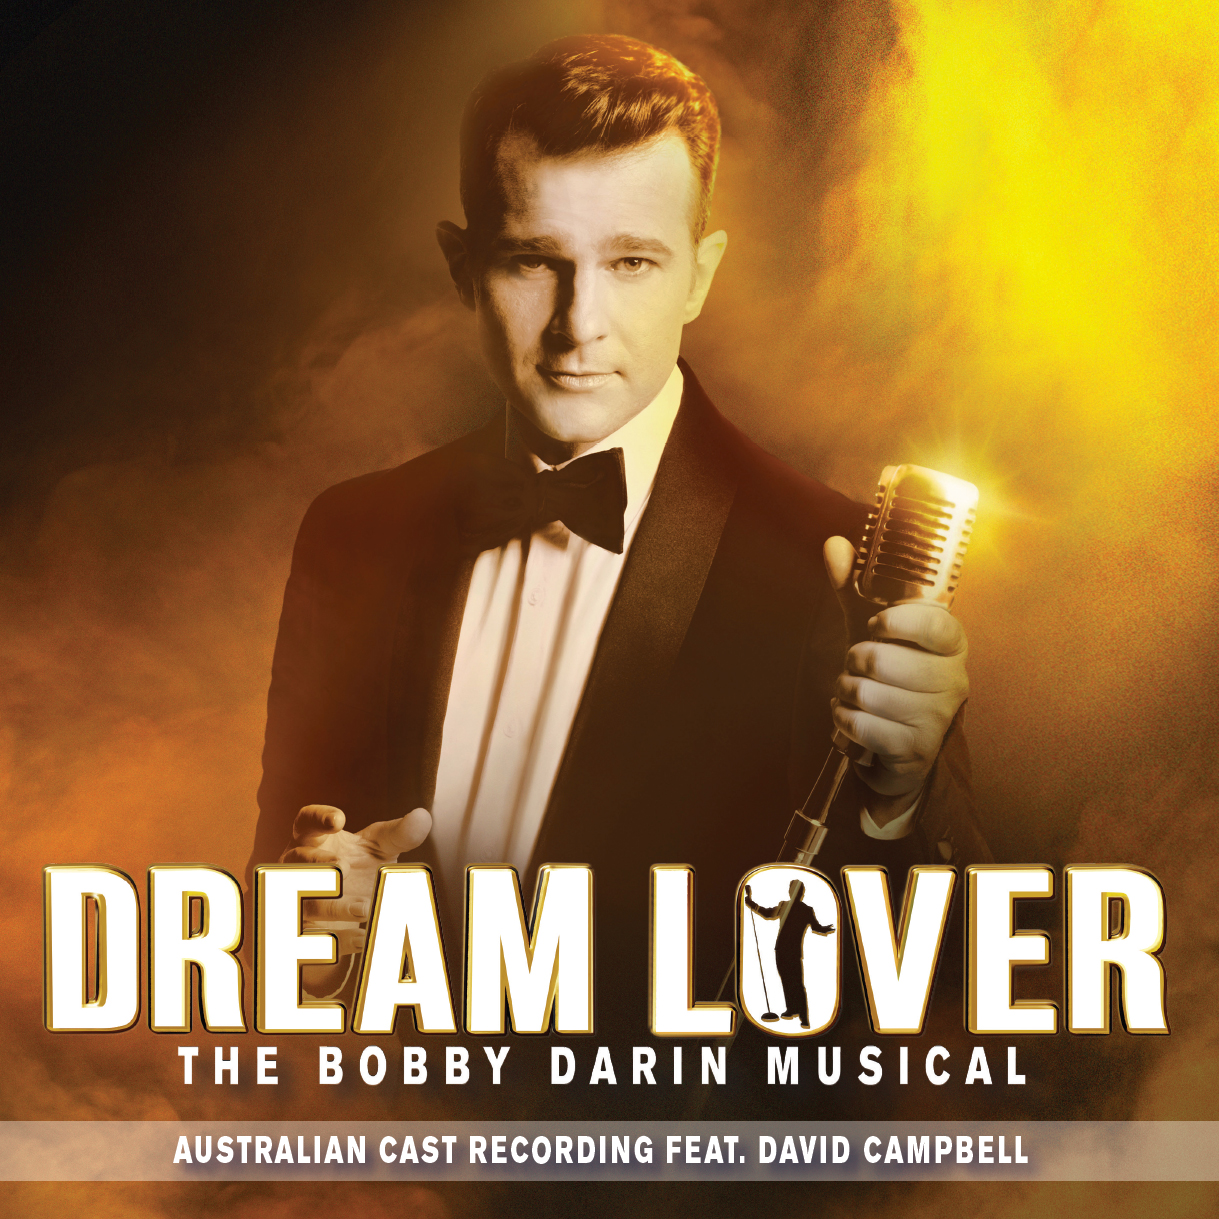 'DREAM LOVER – THE BOBBY DARIN MUSICAL'  ALBUM RELEASED SEPT 23 FEATURING DAVID CAMPBELL!